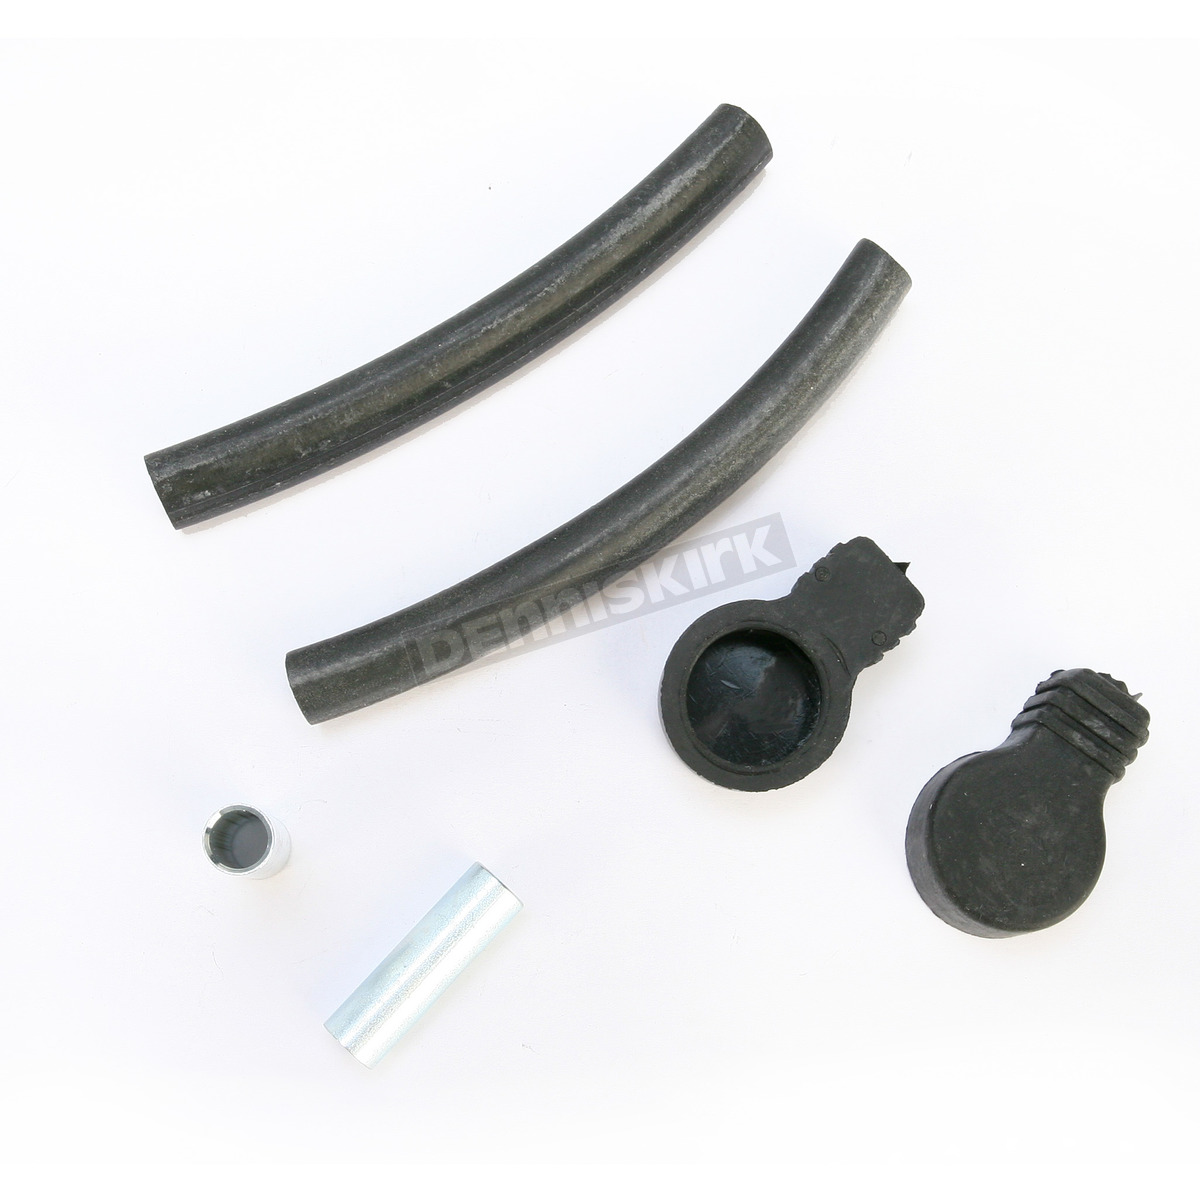 Rubber Boots and Hoses for Evolution Crankcase Breather Kit - 8999